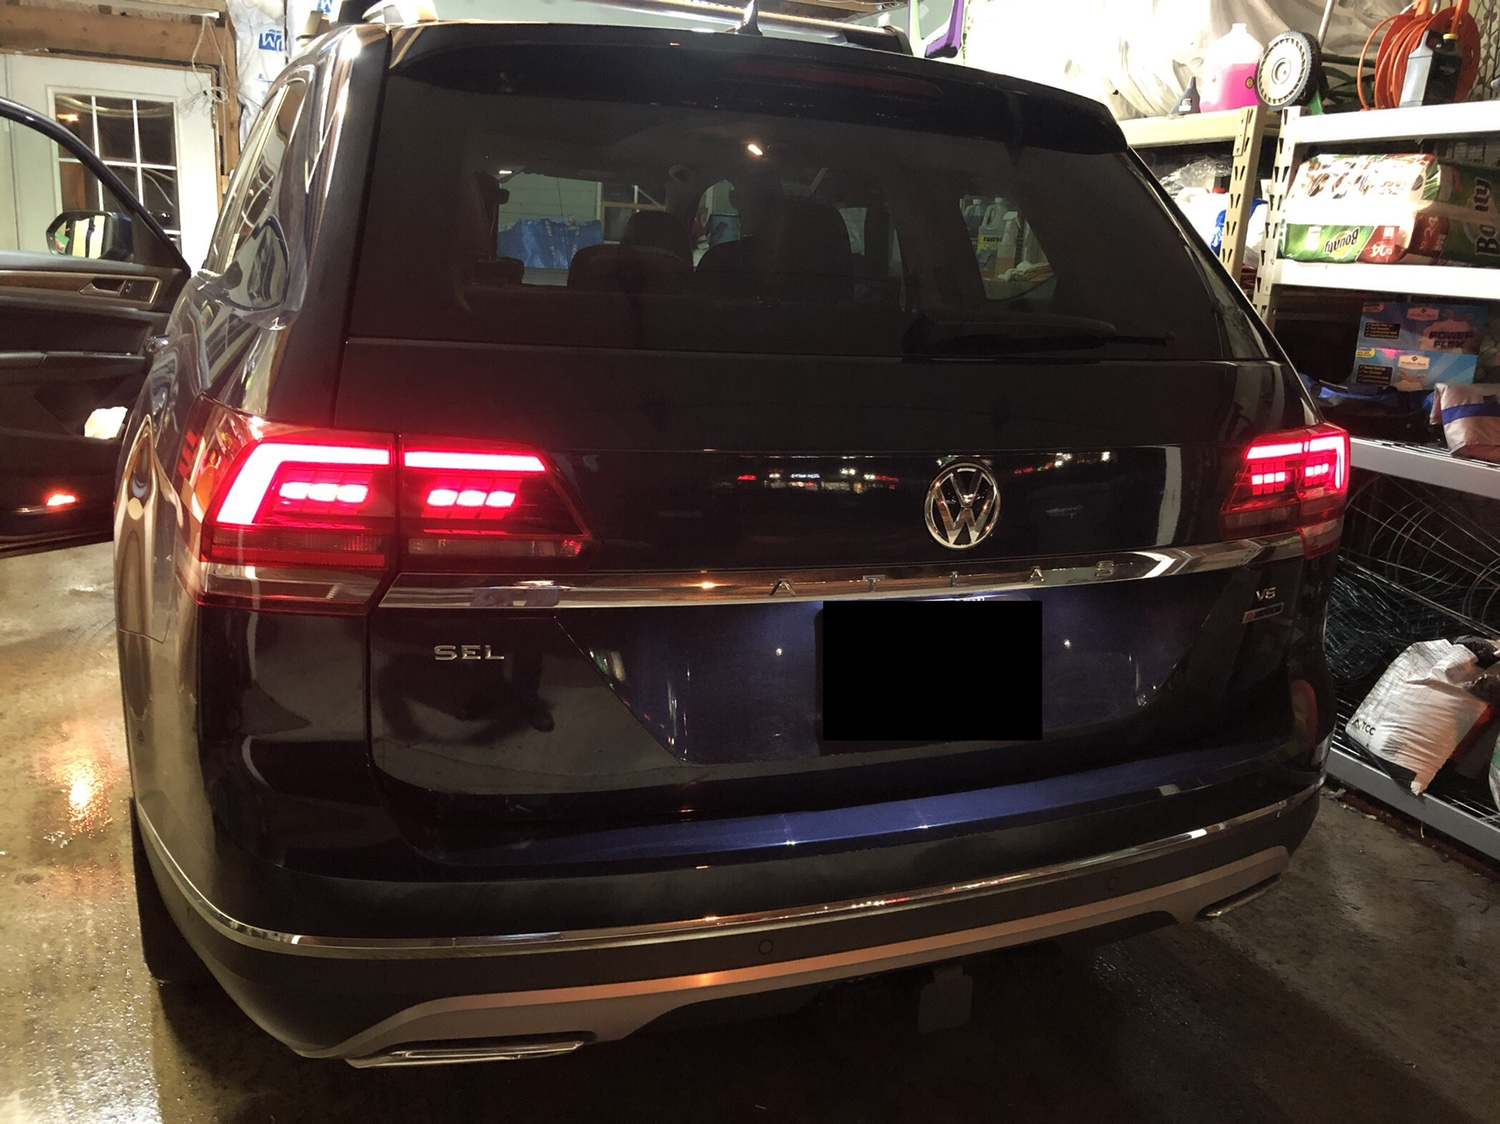 Vwvortexcom Rear Fog Lights Diy Thread How Do You Wire The